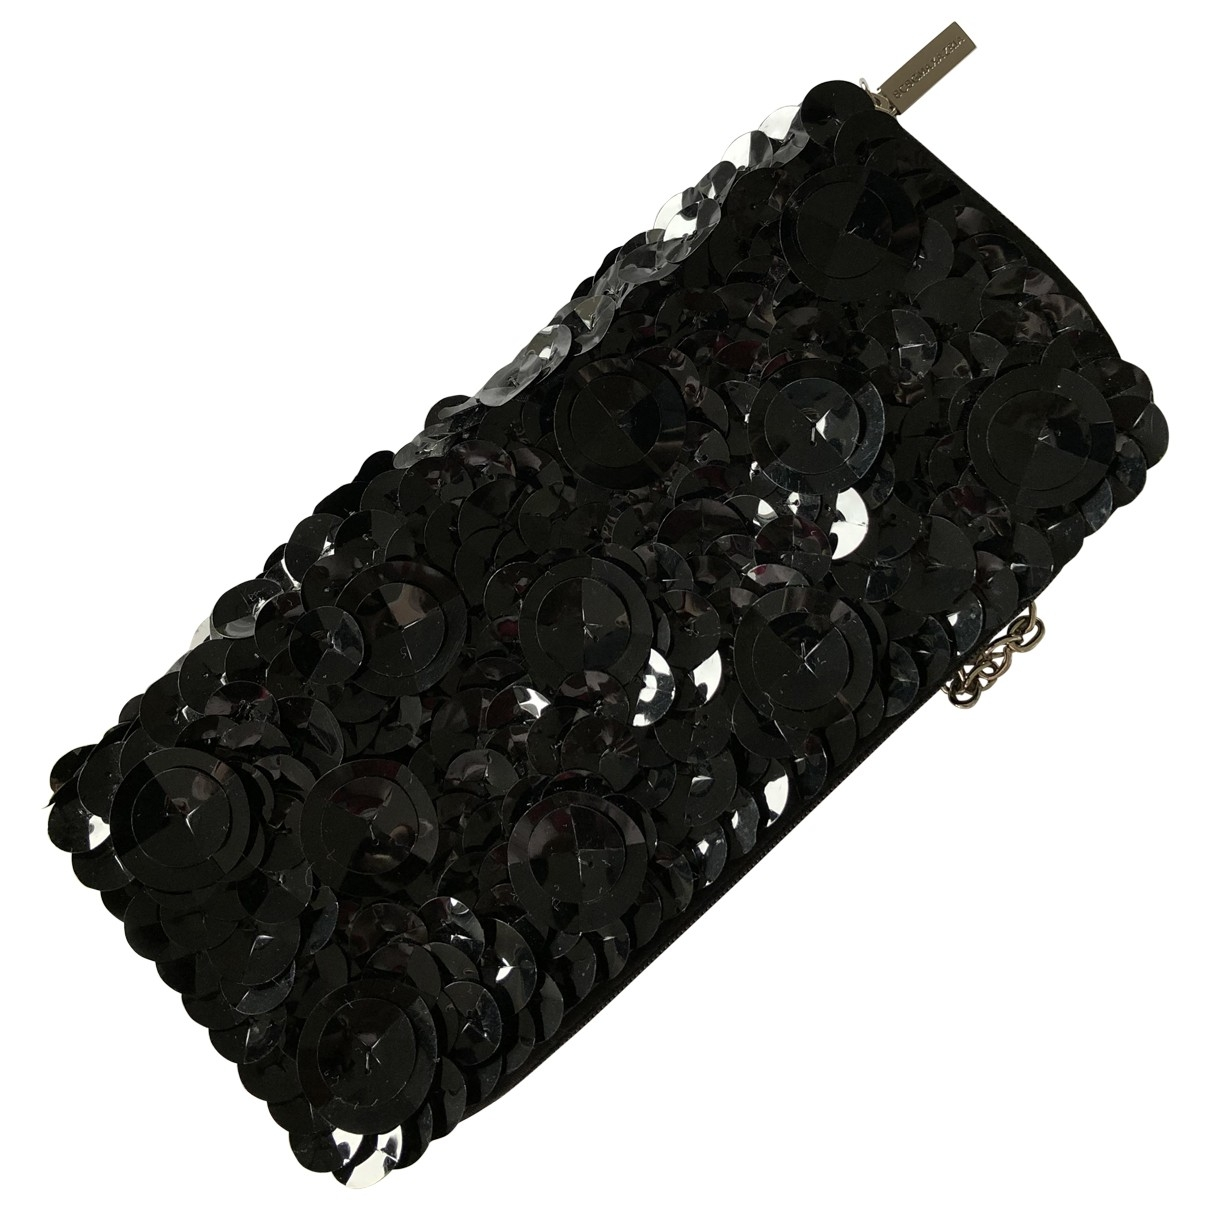 Bcbg Max Azria \N Black Glitter Clutch bag for Women \N